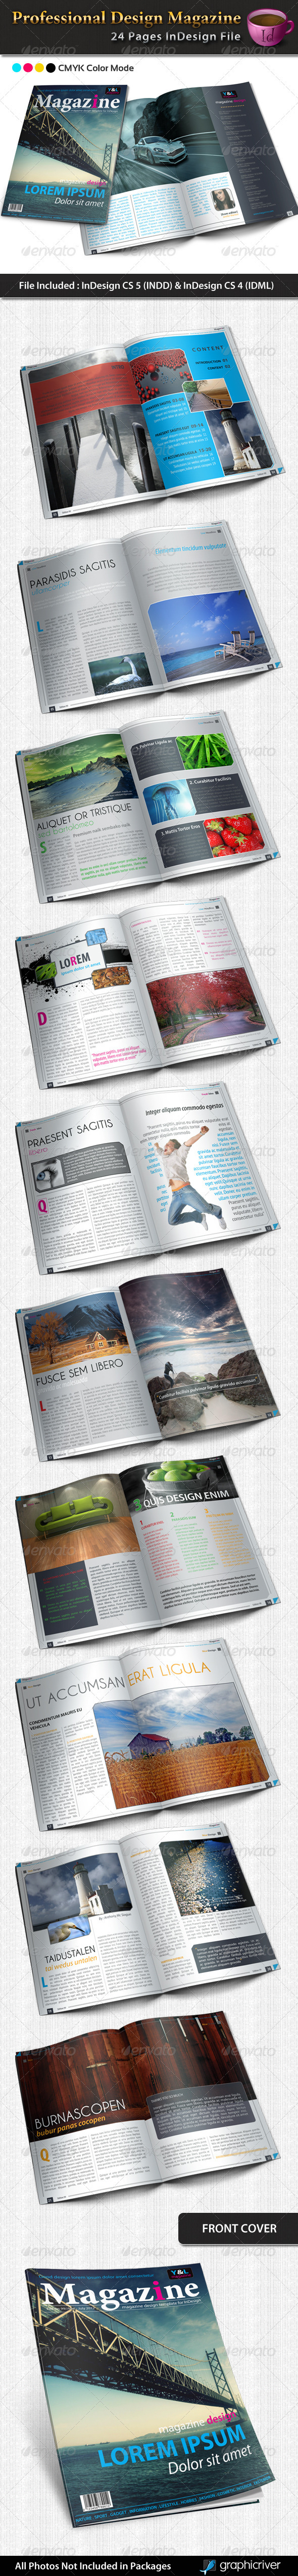 GraphicRiver Professional Design Magazine Template 1986449